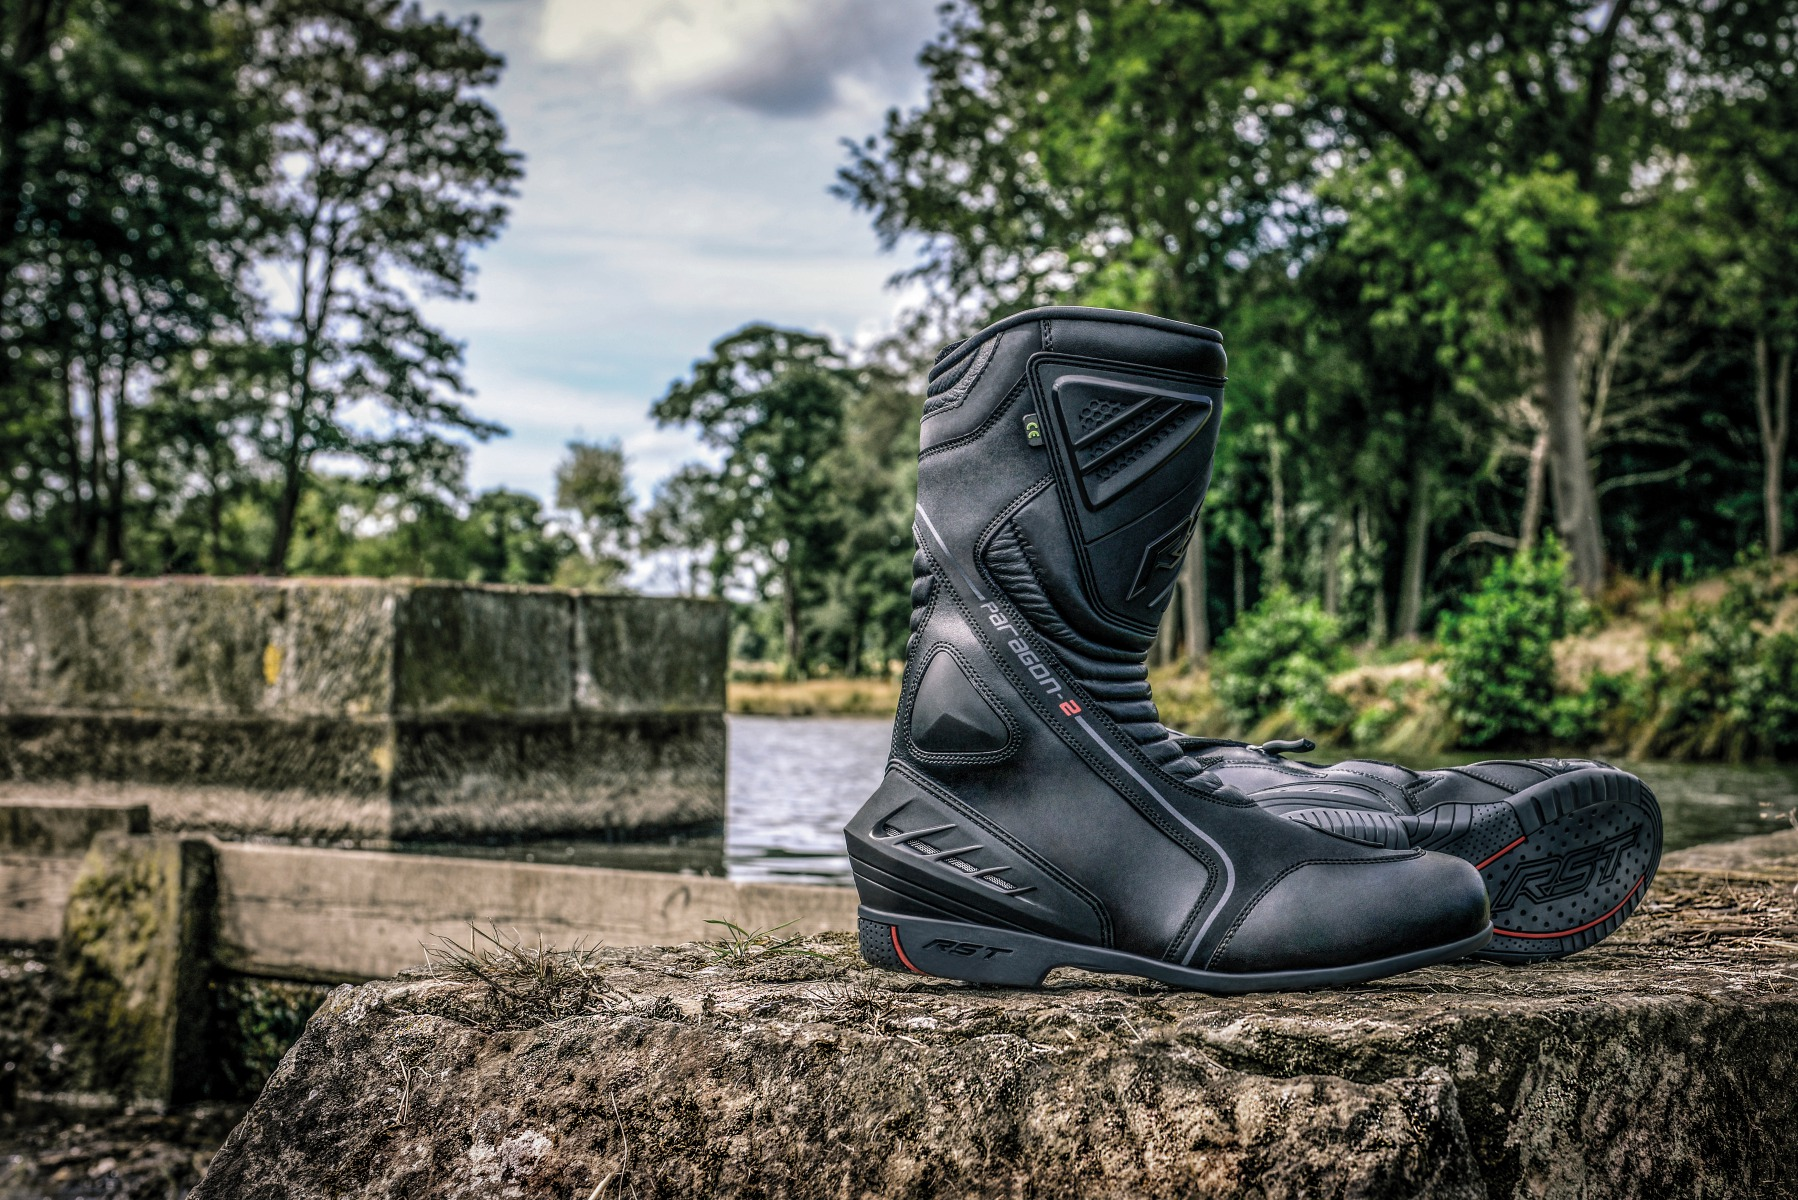 101568-rst-paragon-ii-waterproof-boot-lifestyle-01